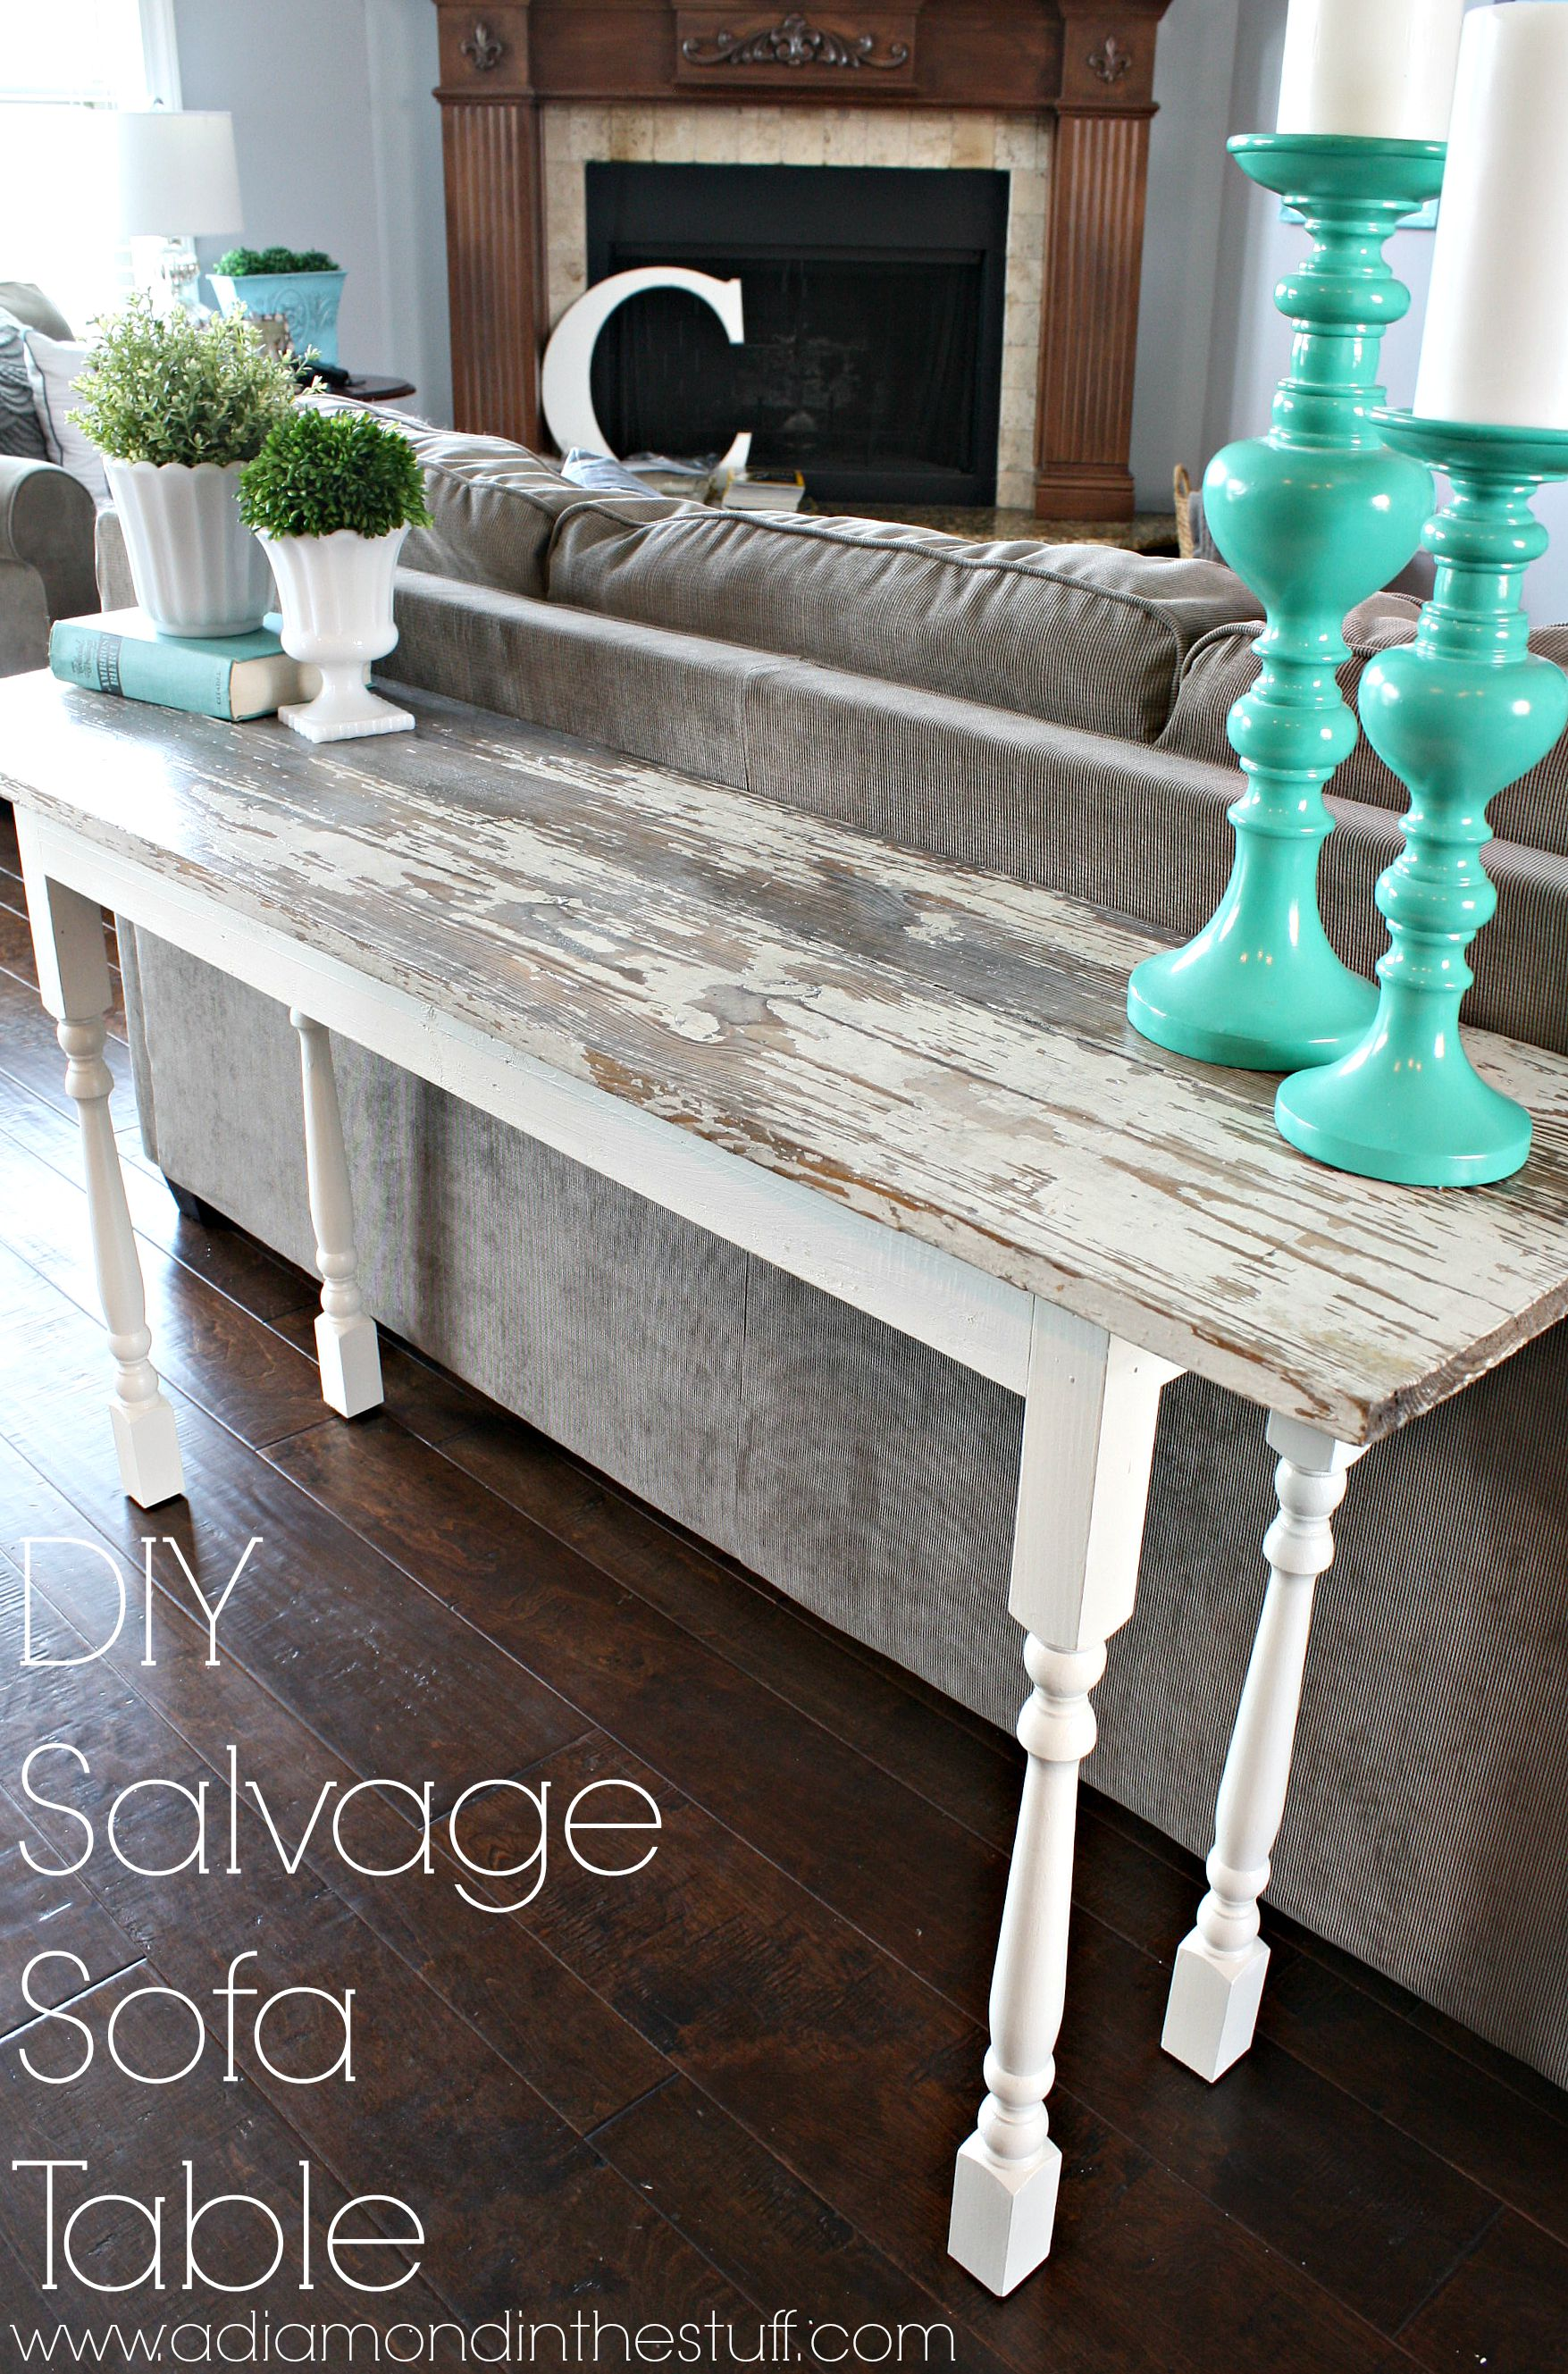 Groovy Diy Salvage Sofa Table Gmtry Best Dining Table And Chair Ideas Images Gmtryco